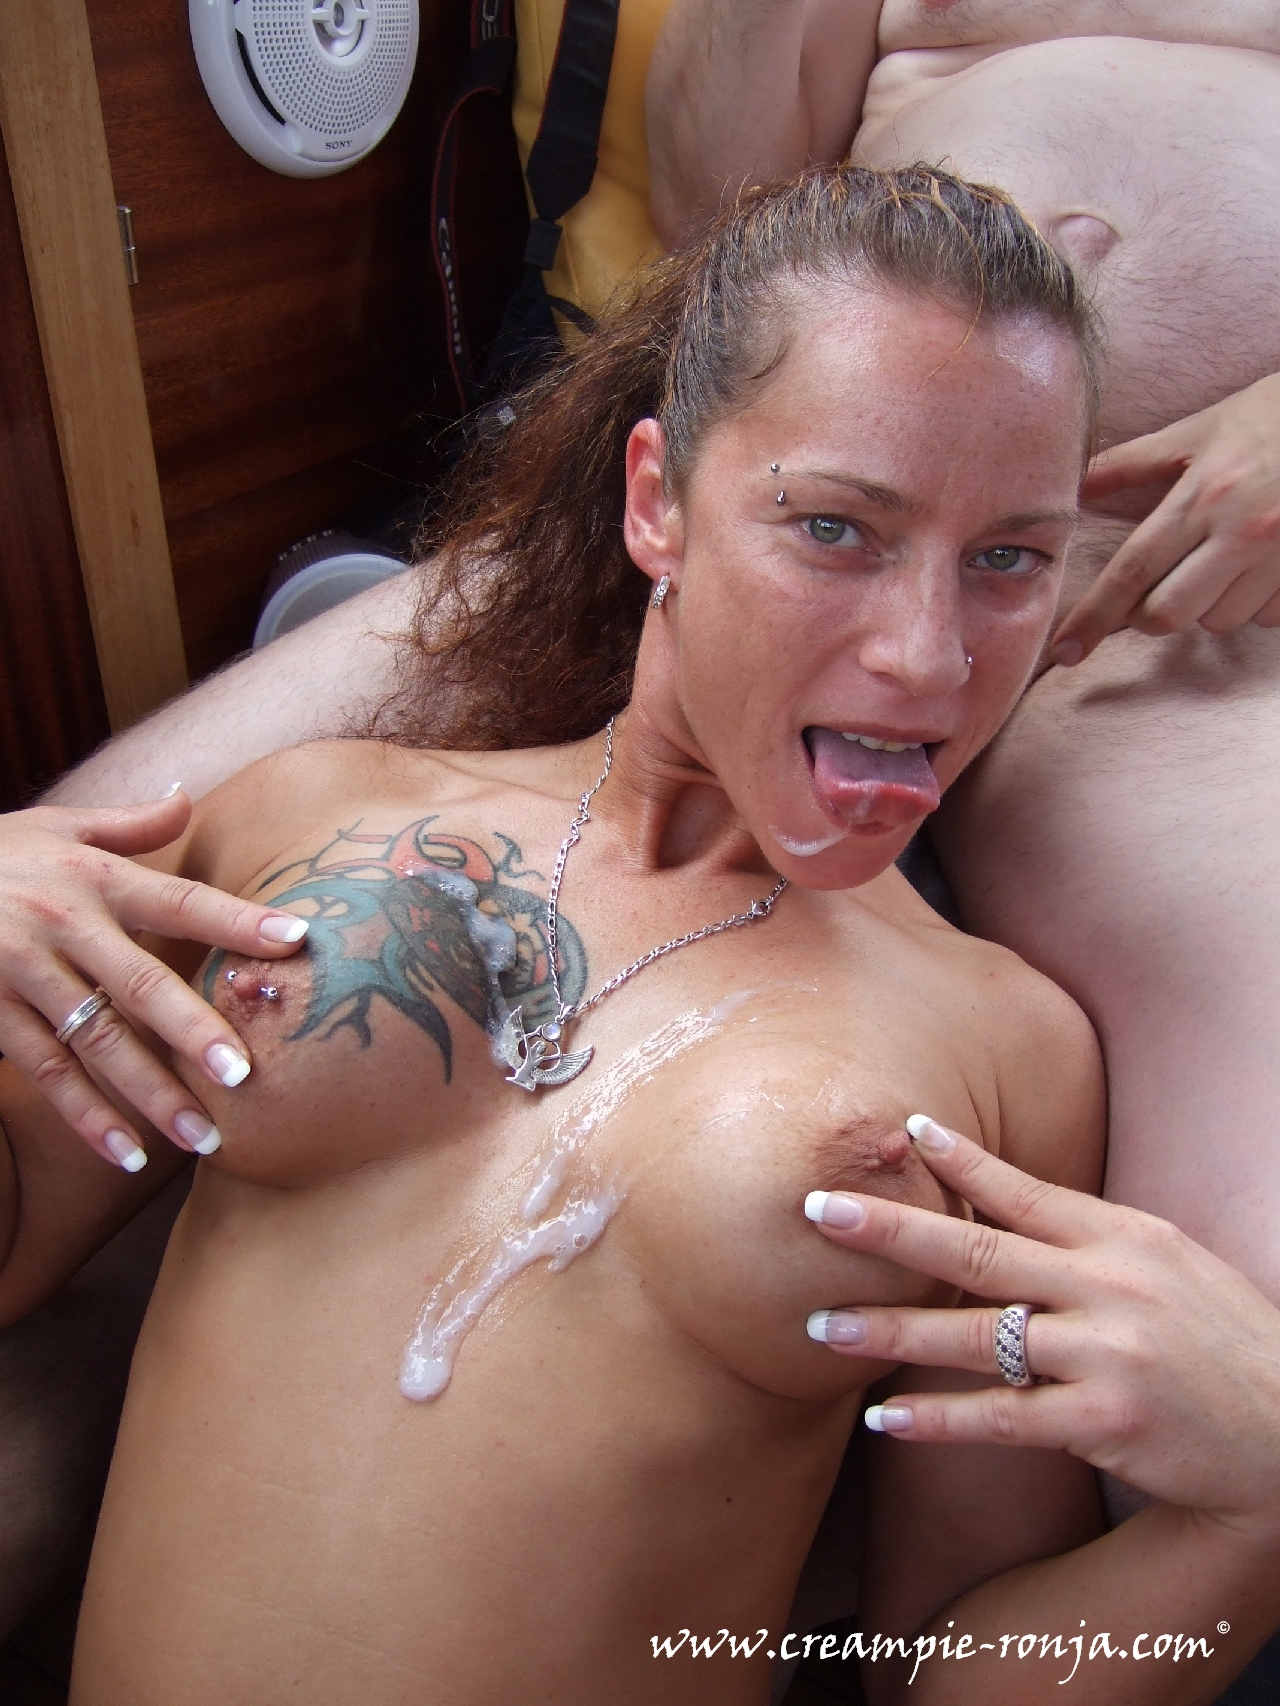 Pierced and tattooed amateur blow jon my sexy piercings girl 5